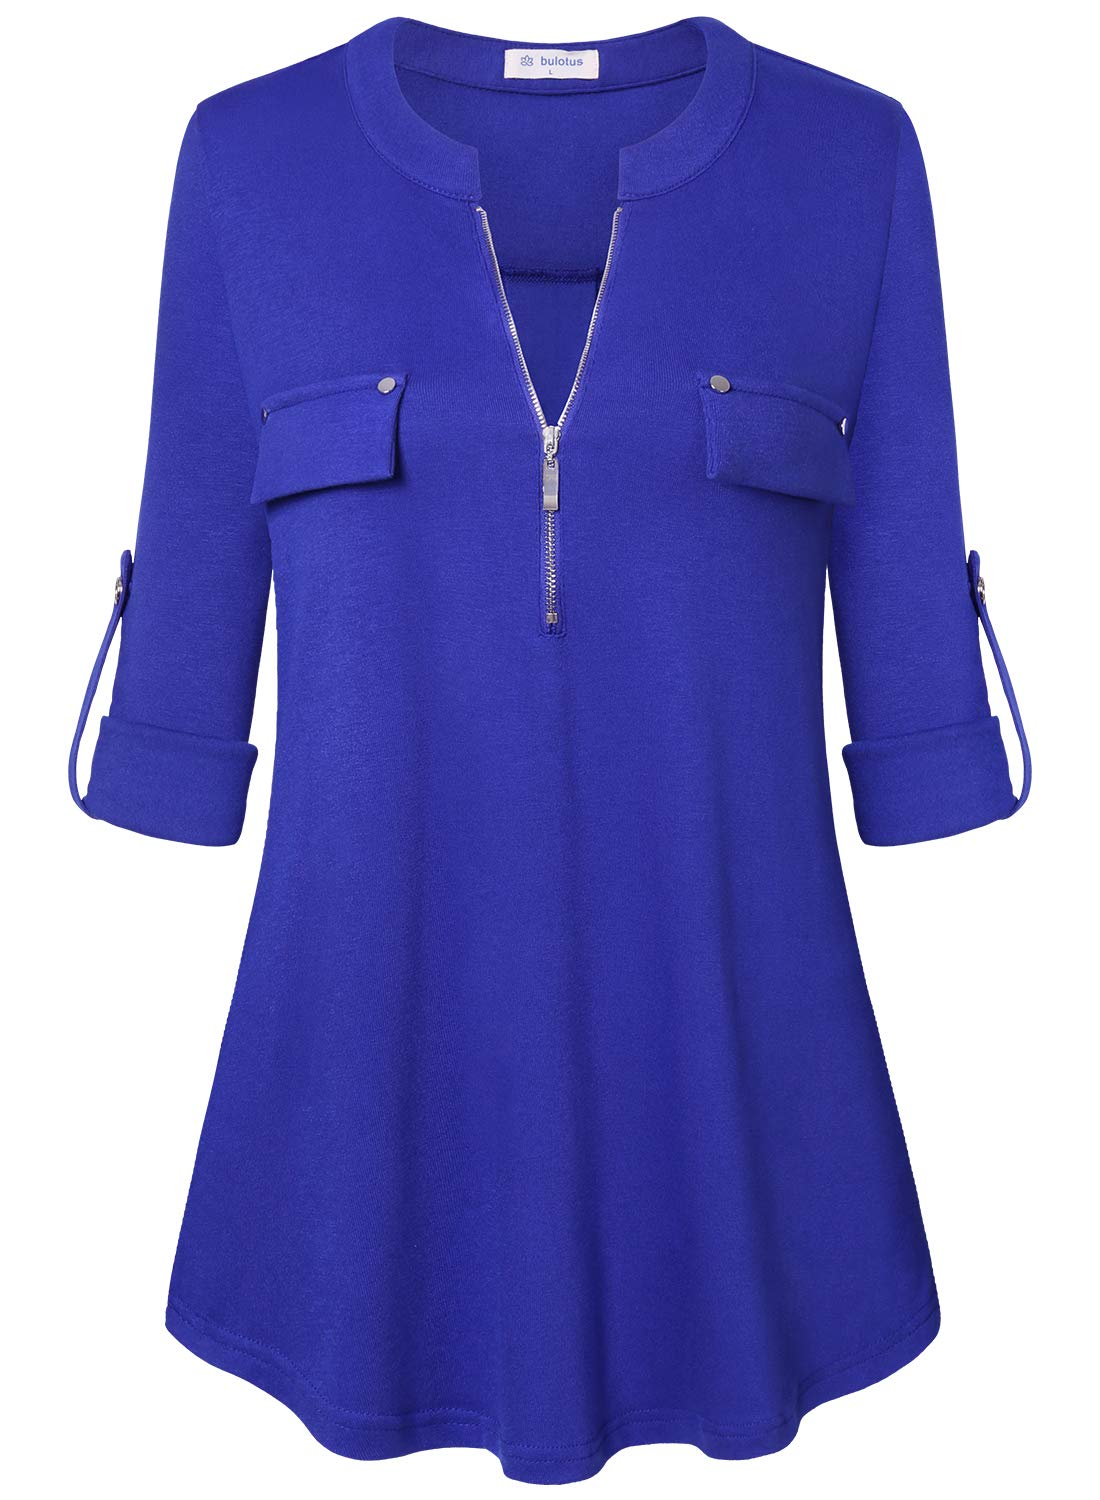 Bulotus Ladies Zip Front 3/4 Sleeve Tunic Tops for Leggings for Women,Blue,XXX-Large by Bulotus